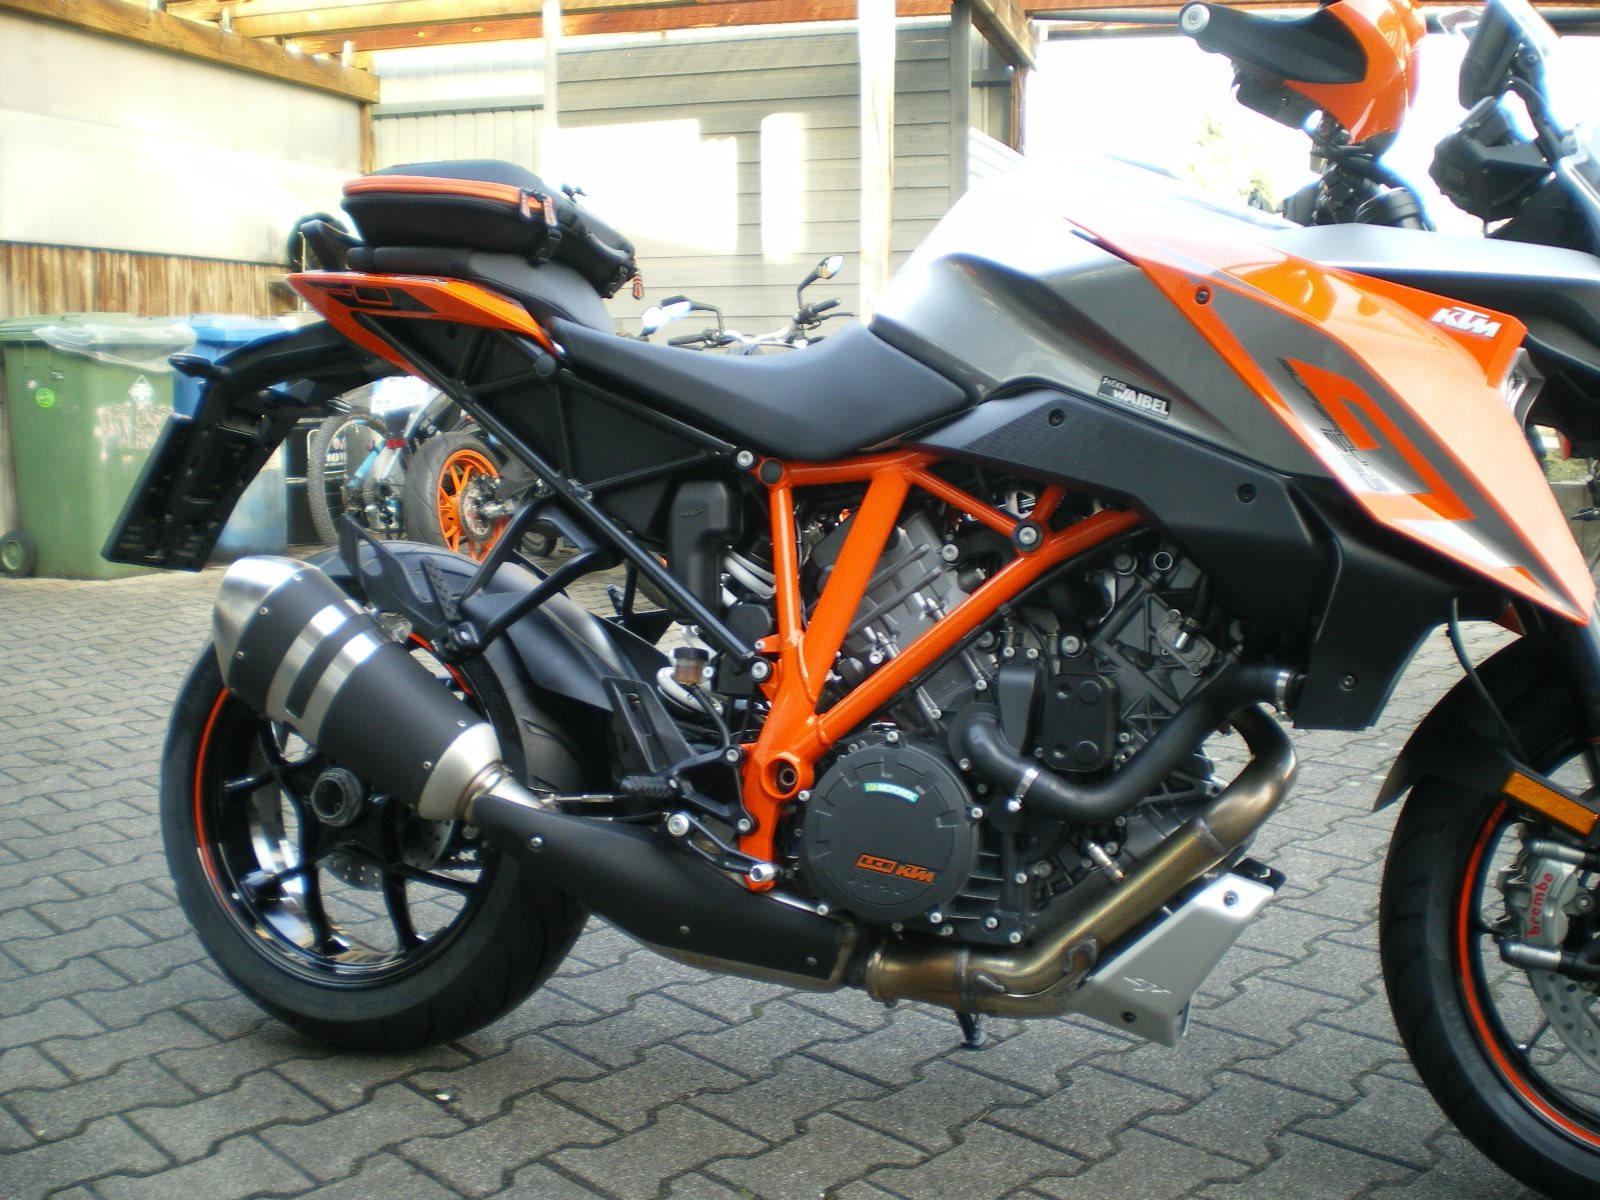 umgebautes motorrad ktm 1290 super duke gt von zweirad waibel gmbh co kg. Black Bedroom Furniture Sets. Home Design Ideas